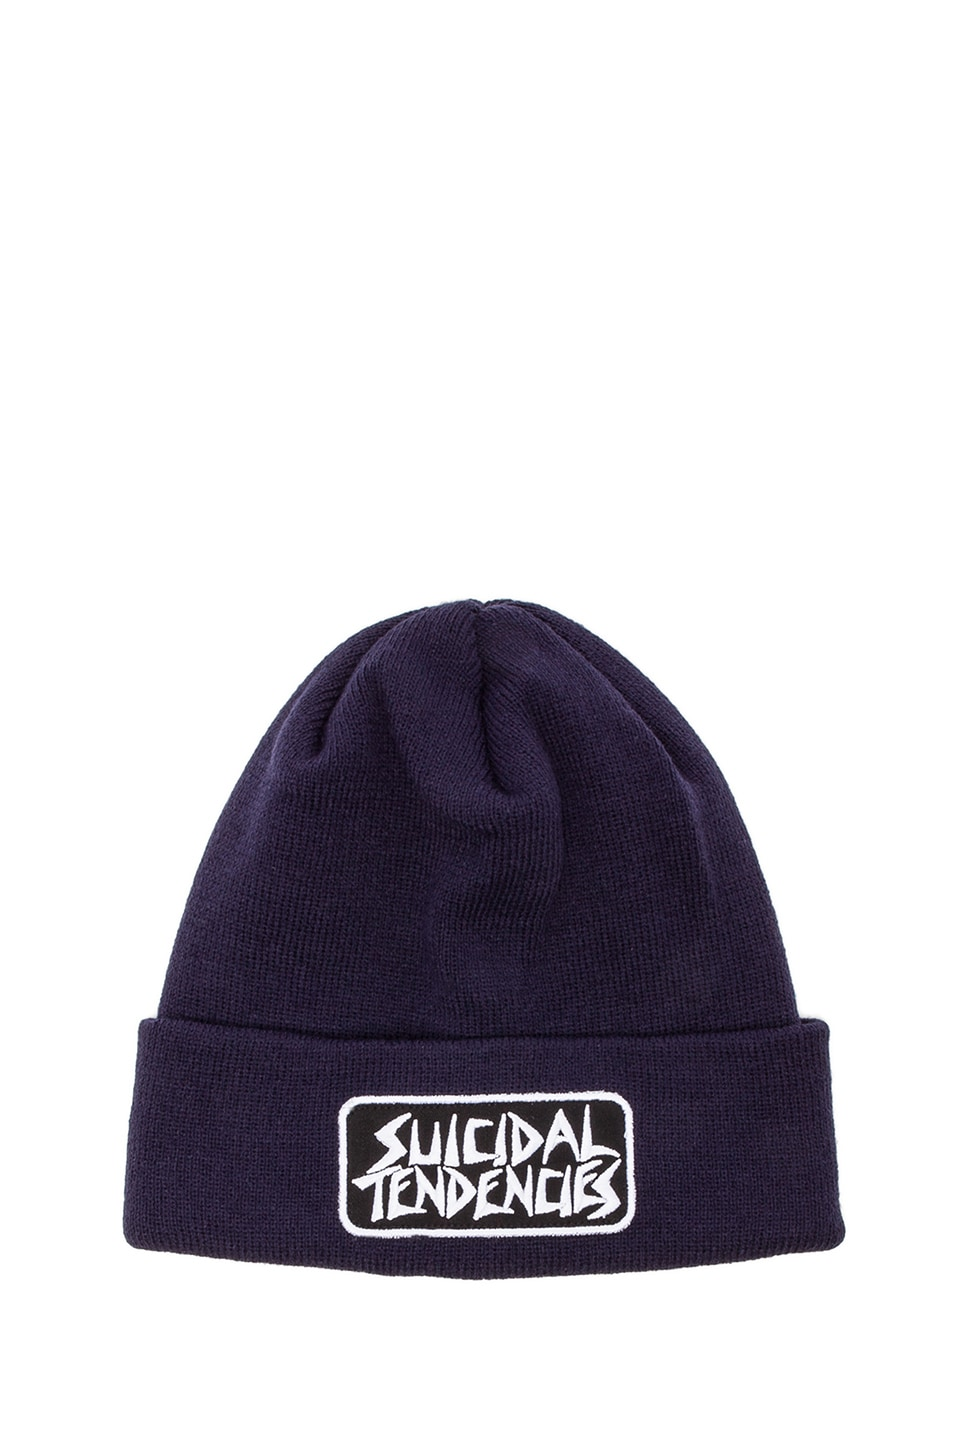 Obey x Suicidal Tendencies Collection Propaganda Beanie in Navy